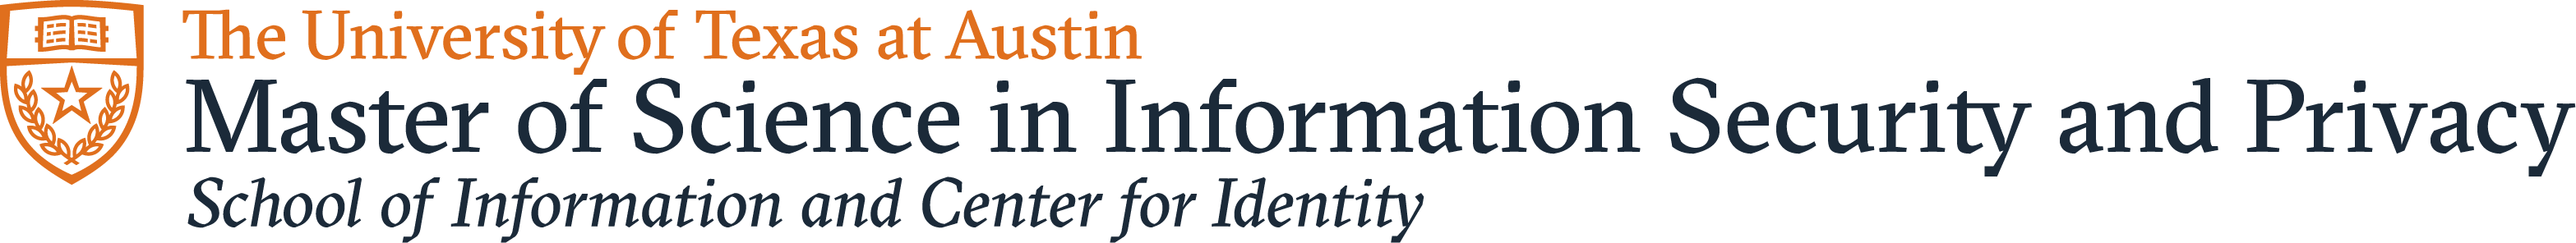 Master of Science in Information Security and Privacy logo